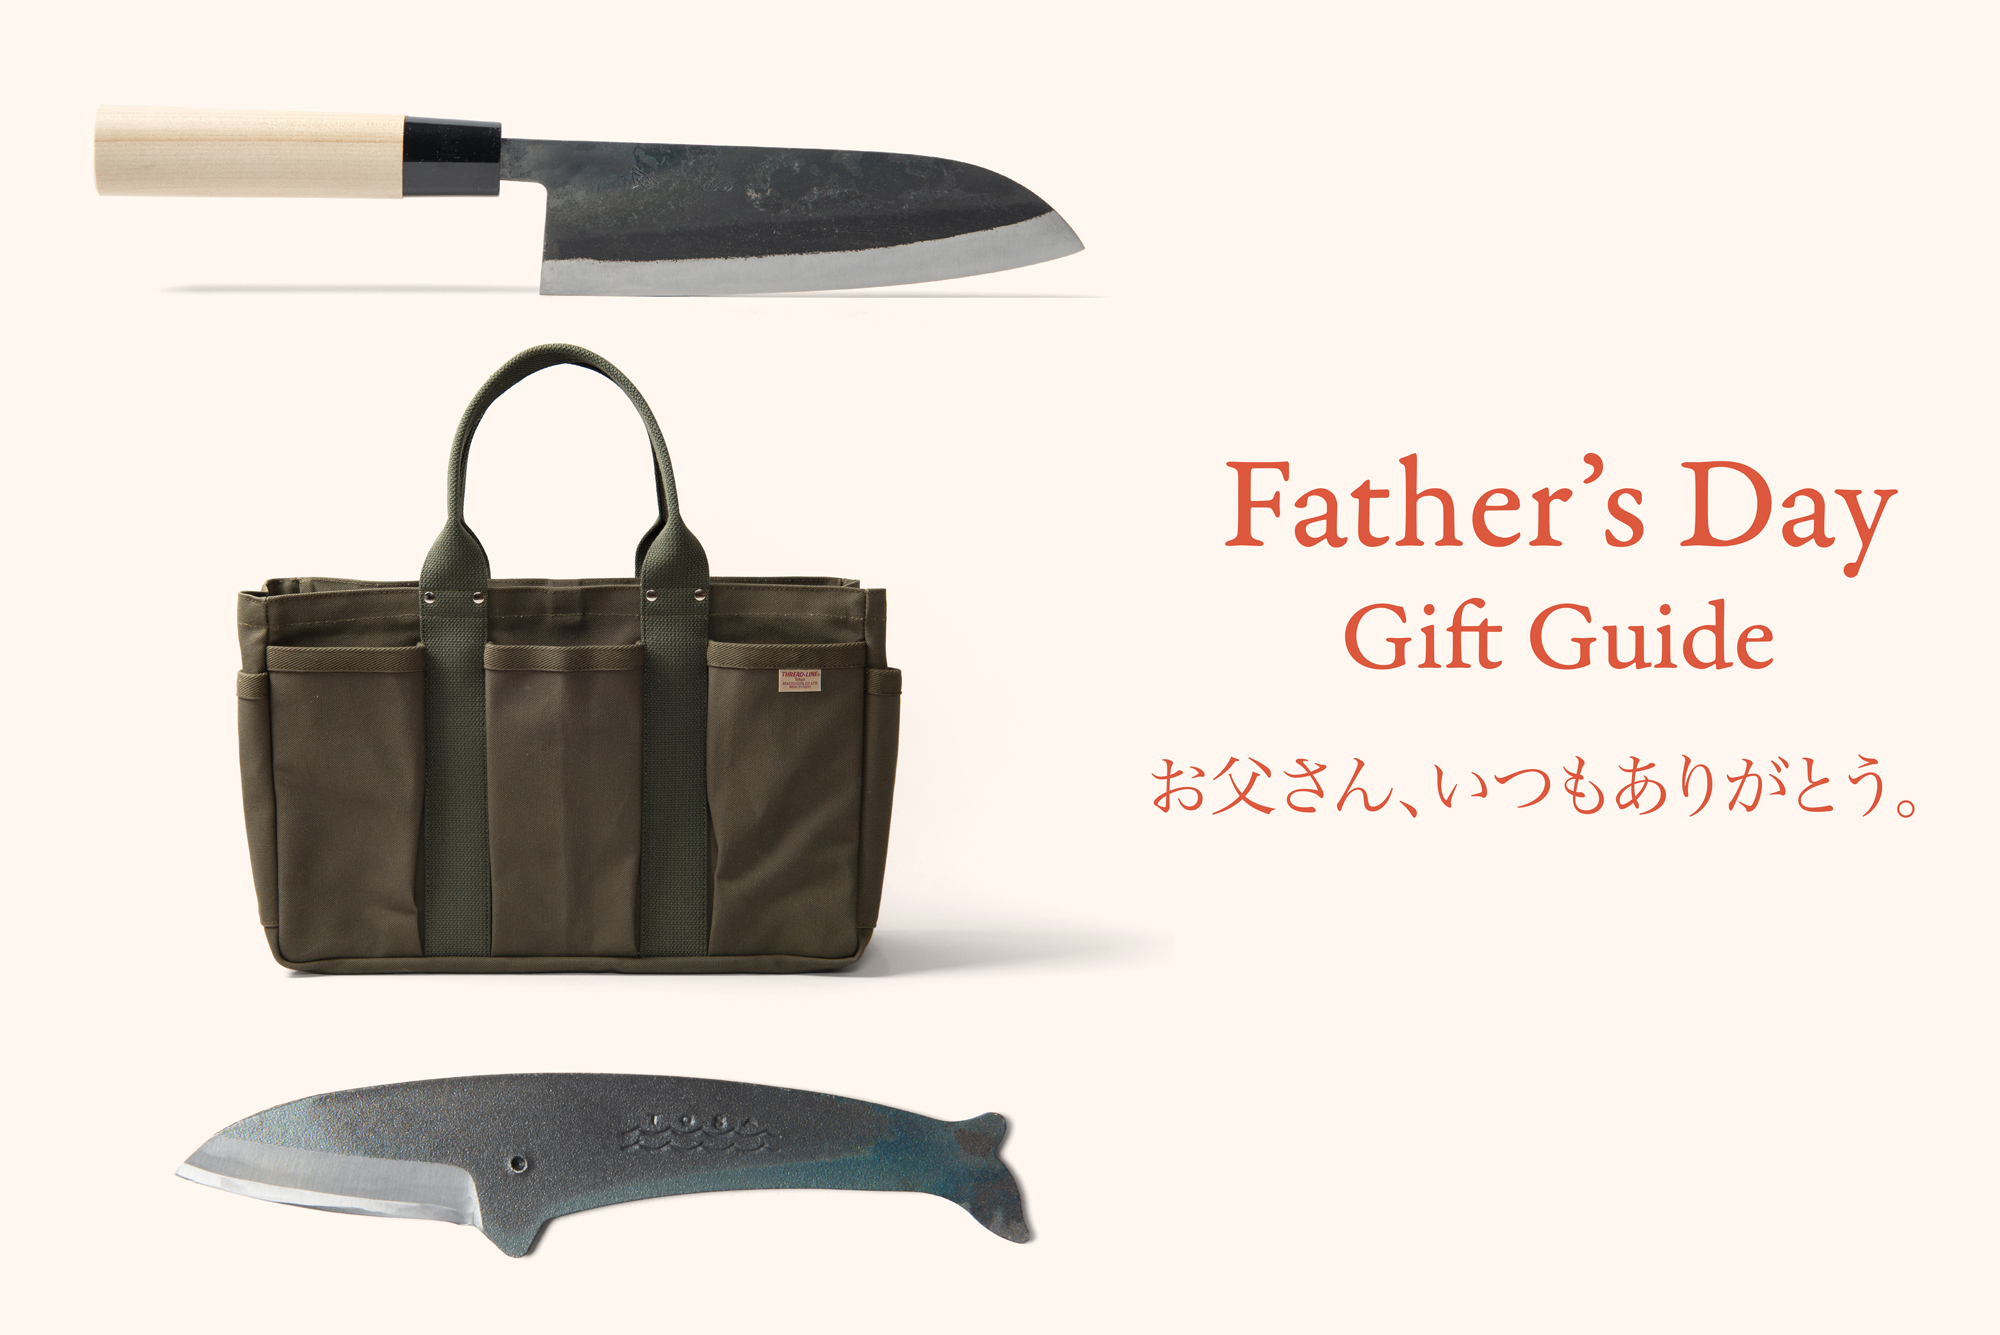 Native&Co-Fathers-Day-2019-Journal.jpg